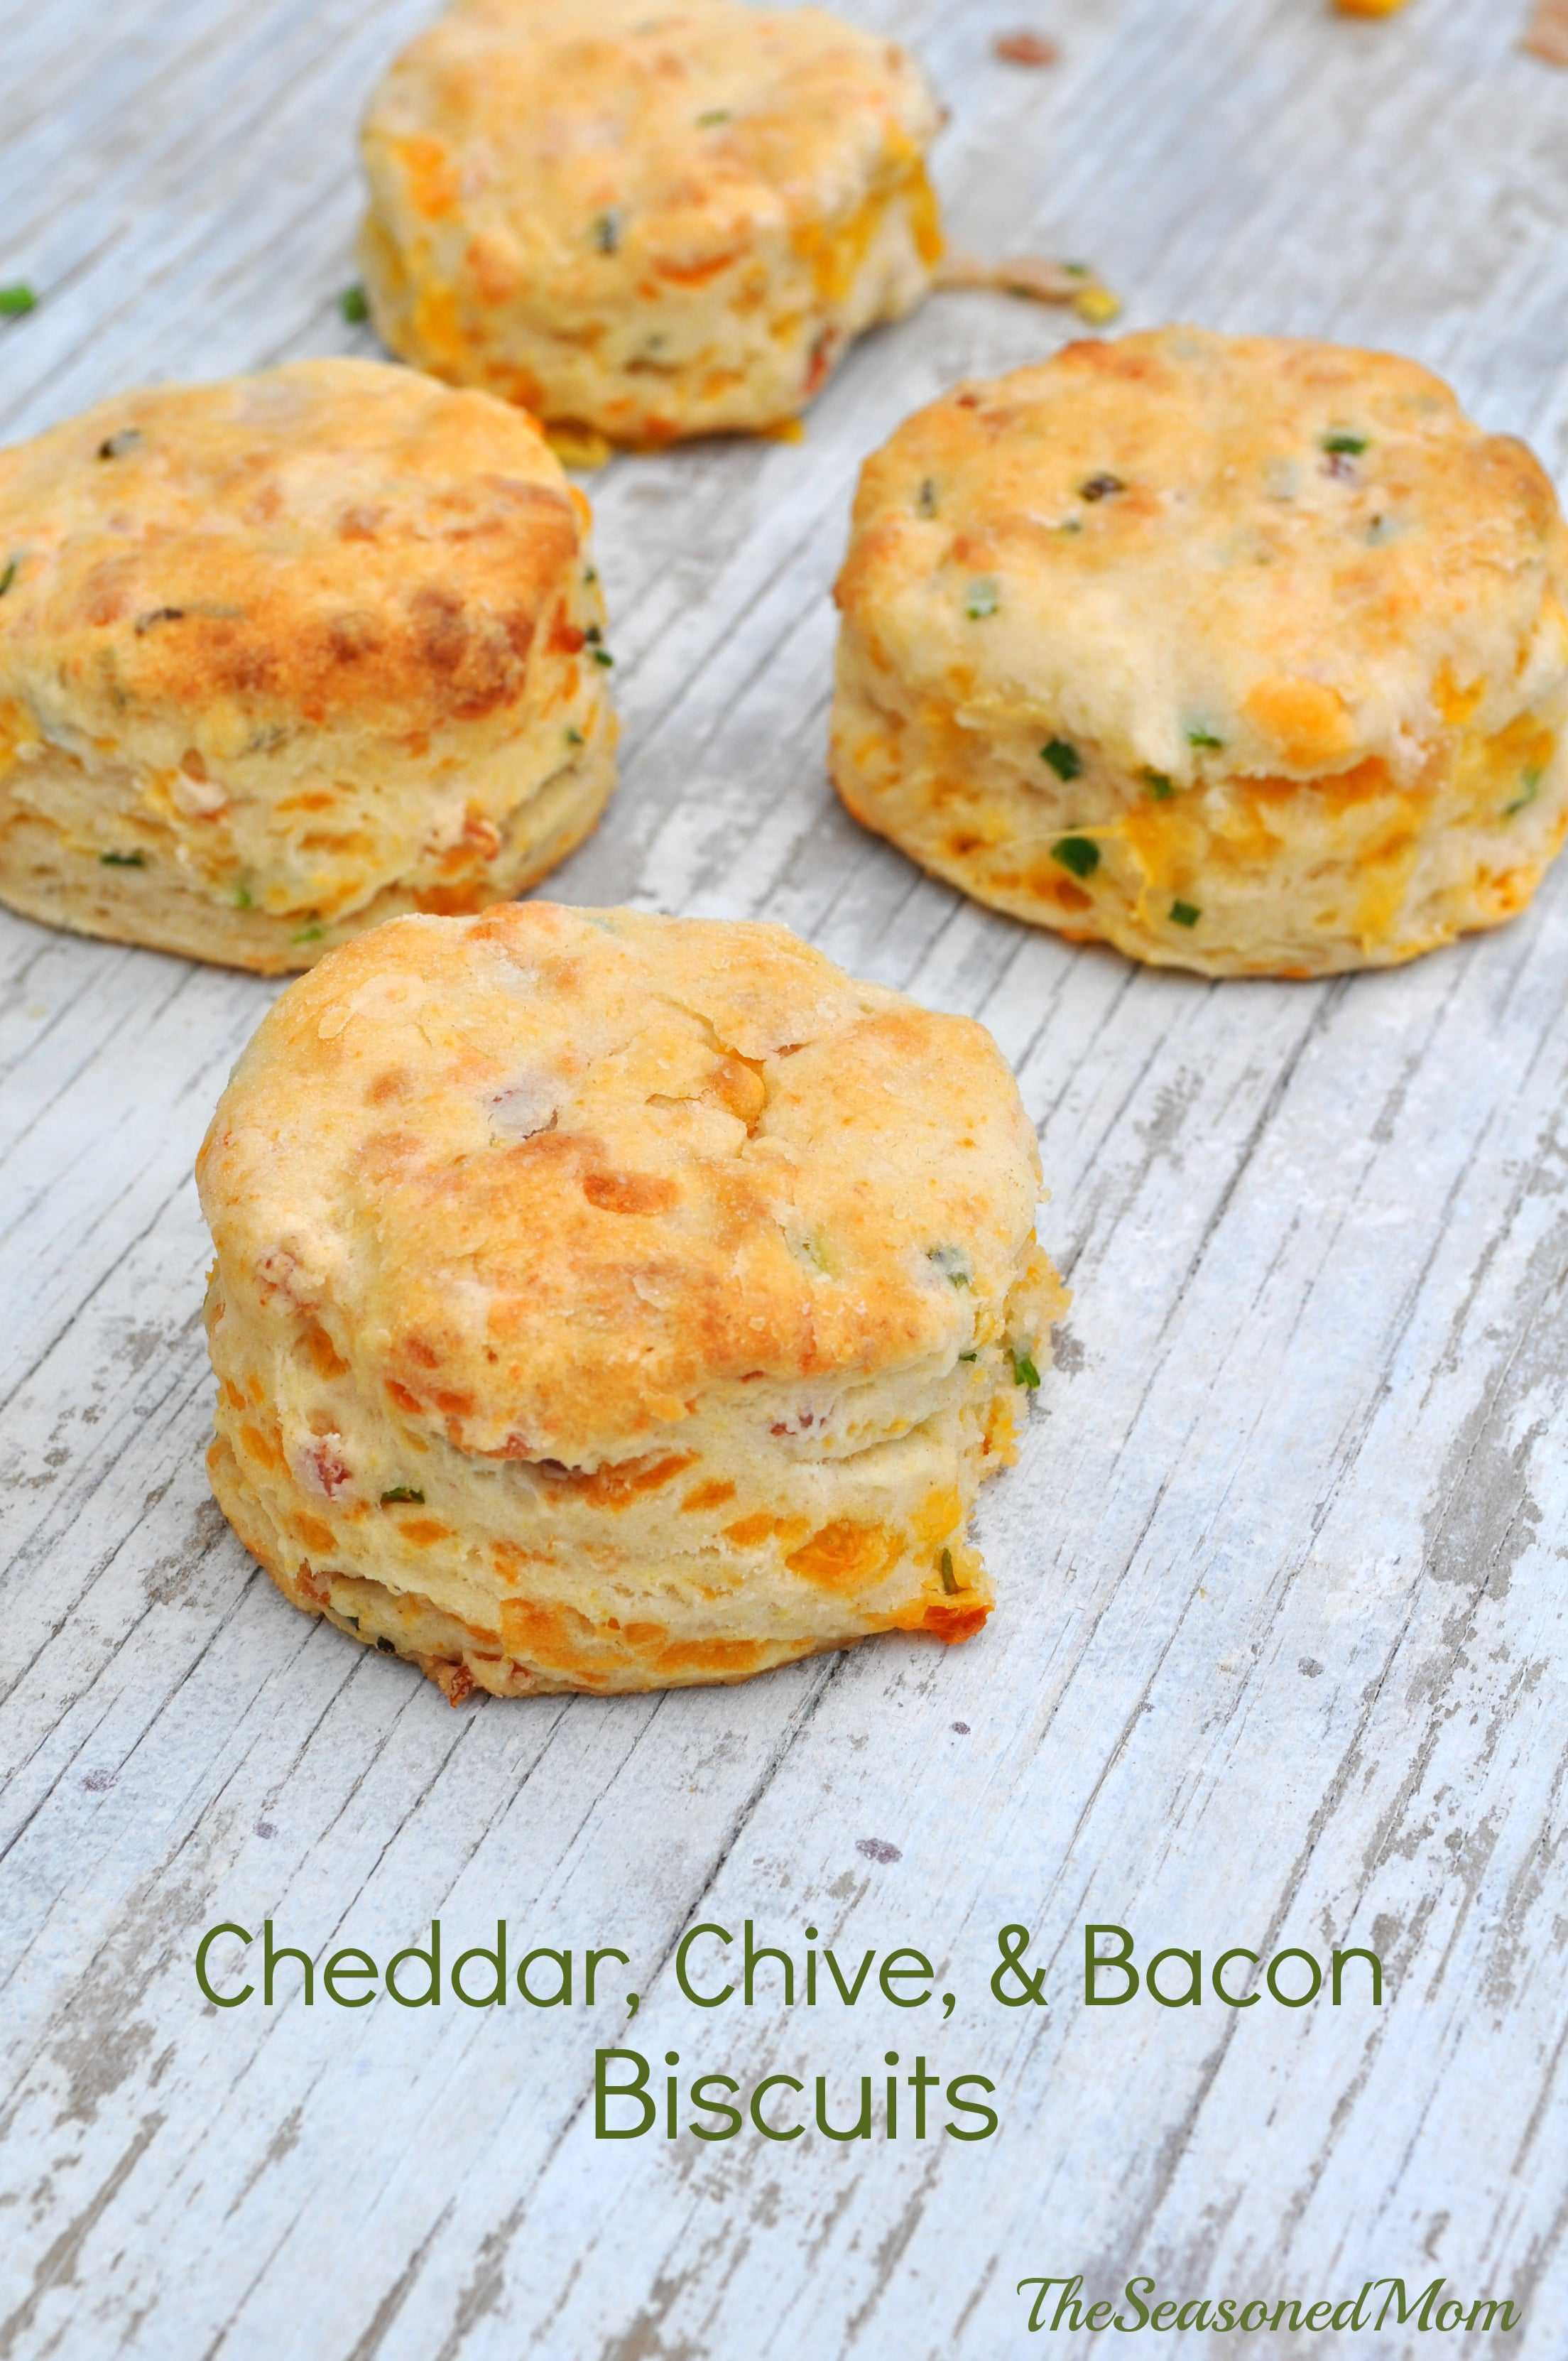 Cheddar Chive and Bacon Biscuits - The Seasoned Mom